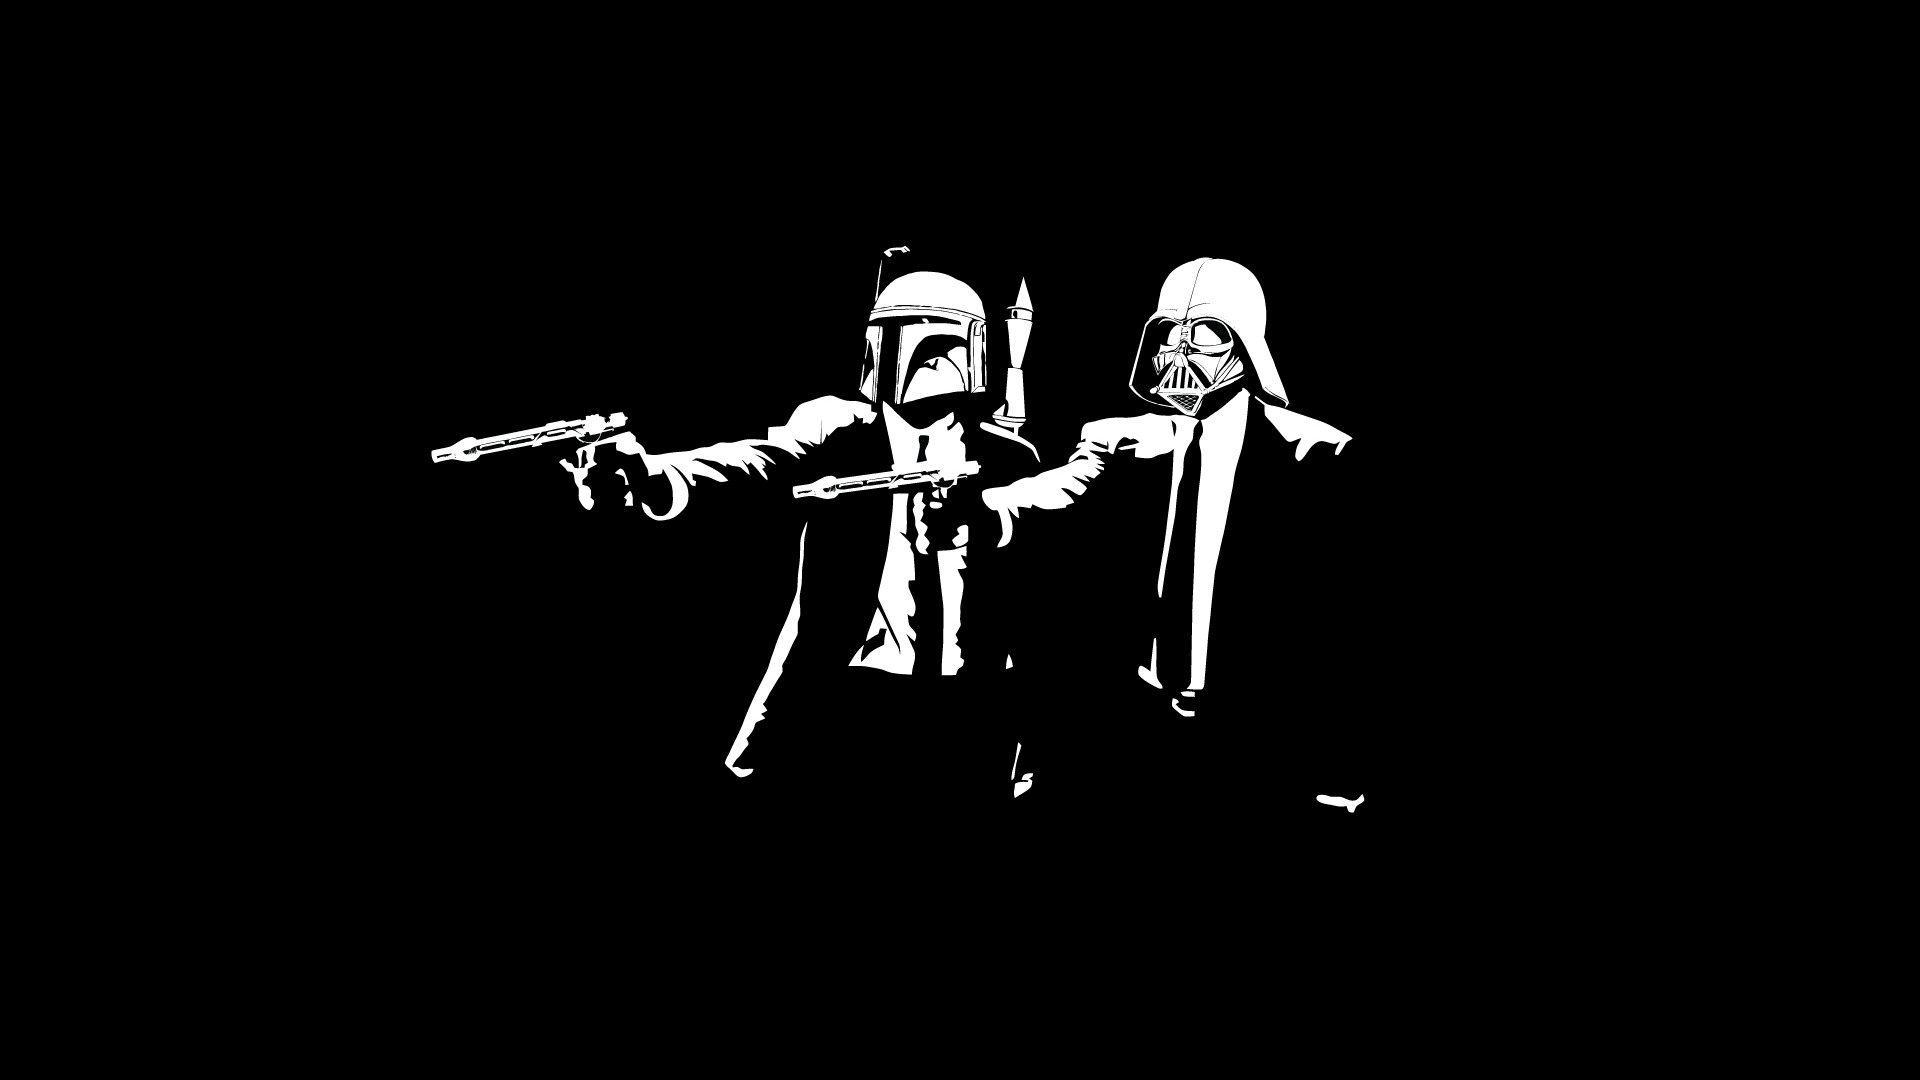 boba fett wallpaper 1080p 5 1920x1080